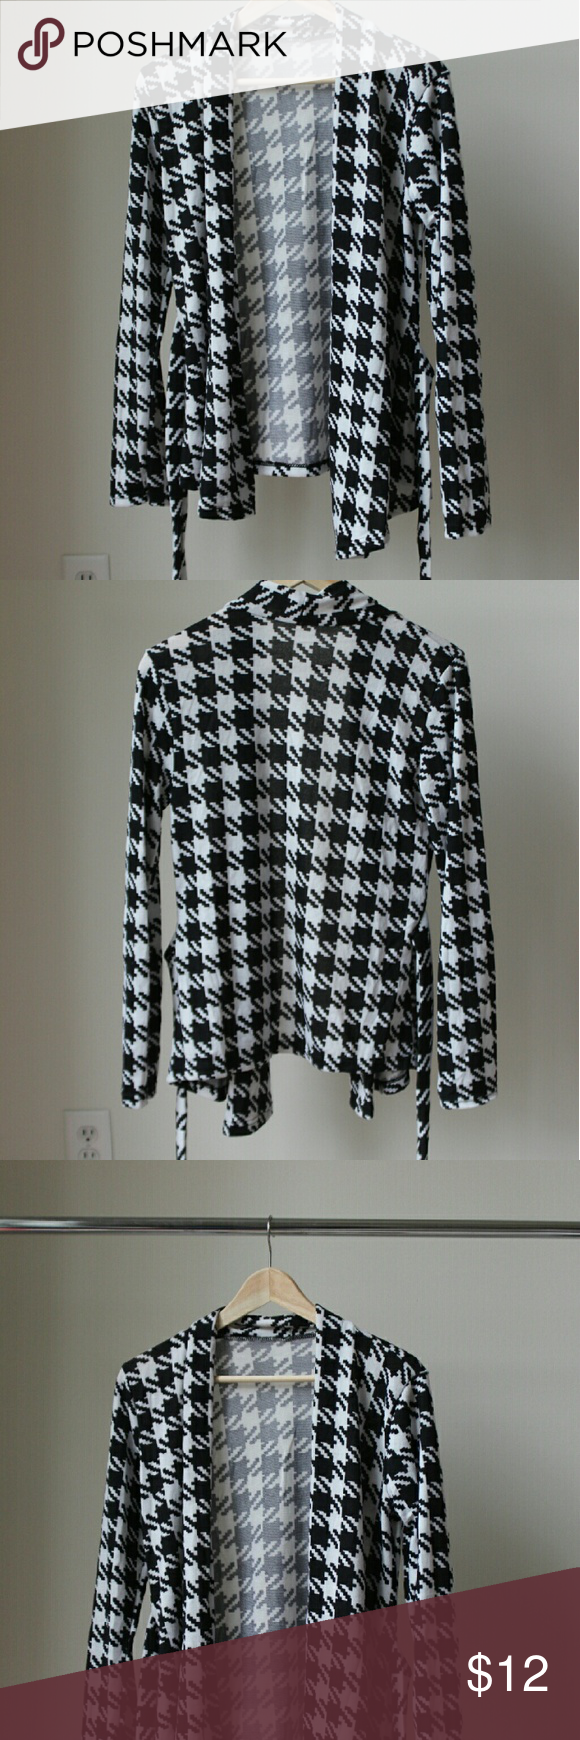 Black and White Cardigan In great condition Sweaters Cardigans